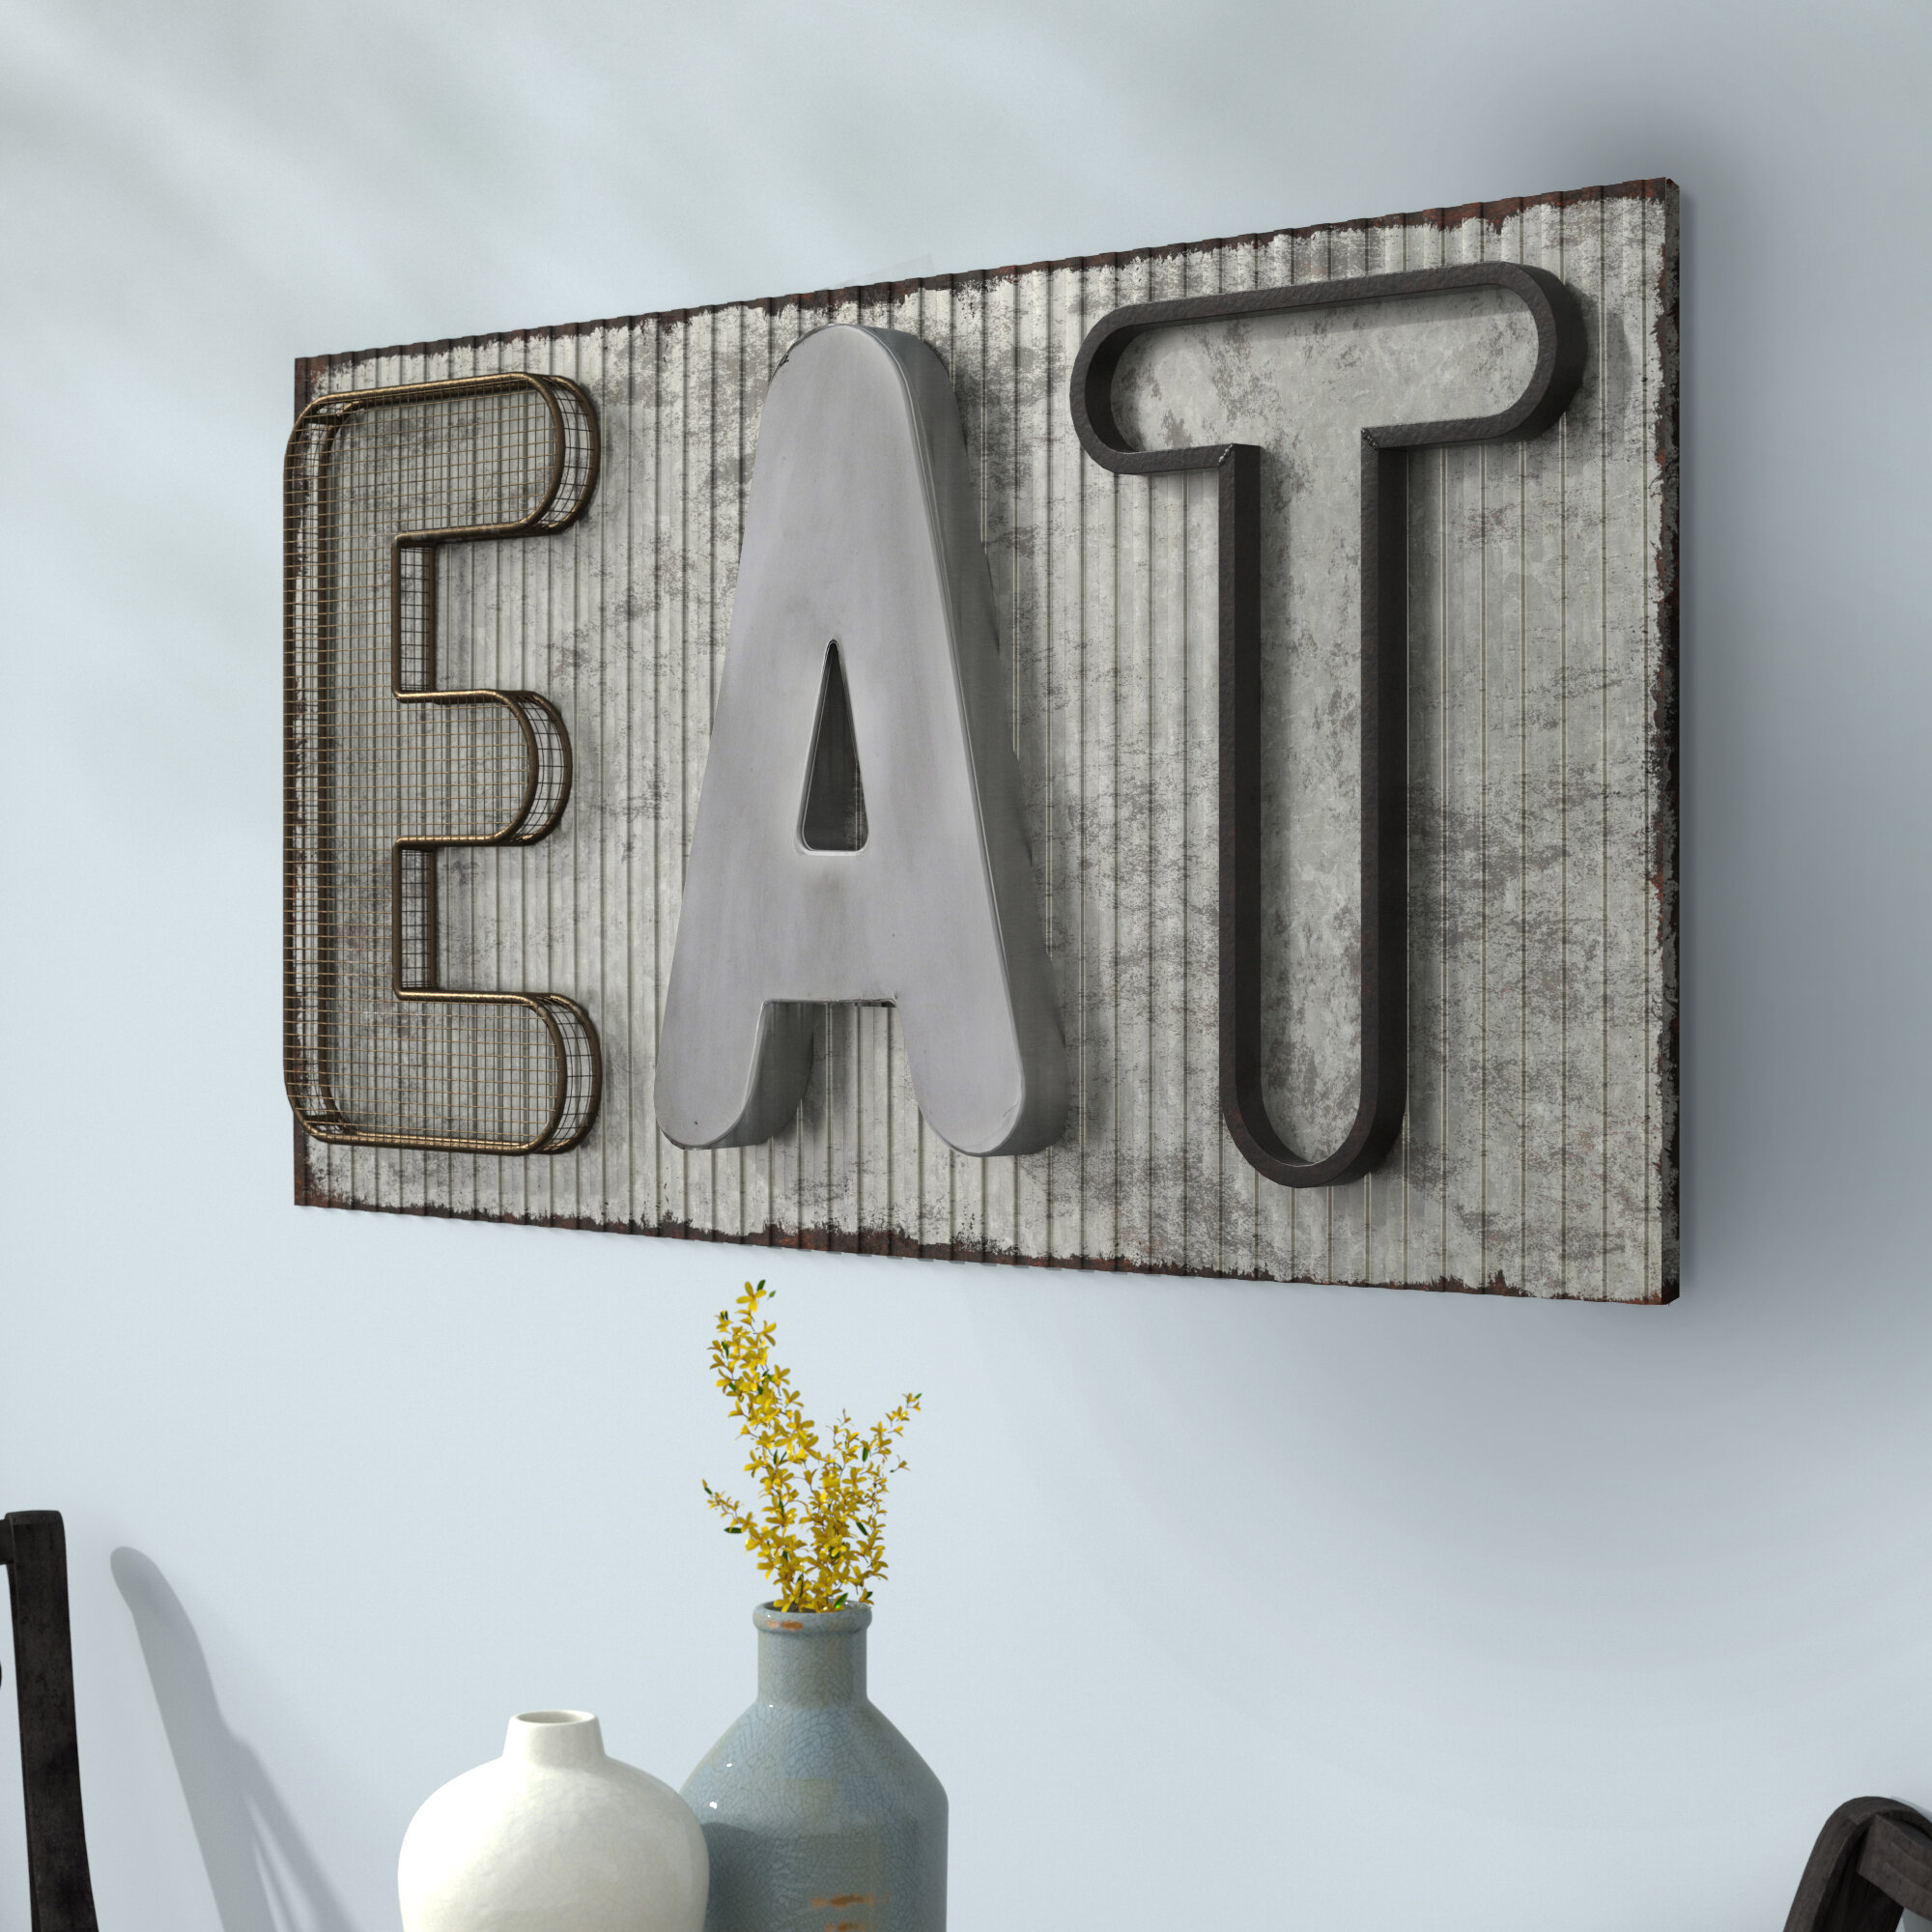 Vertical Eat Sign | Wayfair Intended For Casual Country Eat Here Retro Wall Decor (View 26 of 30)